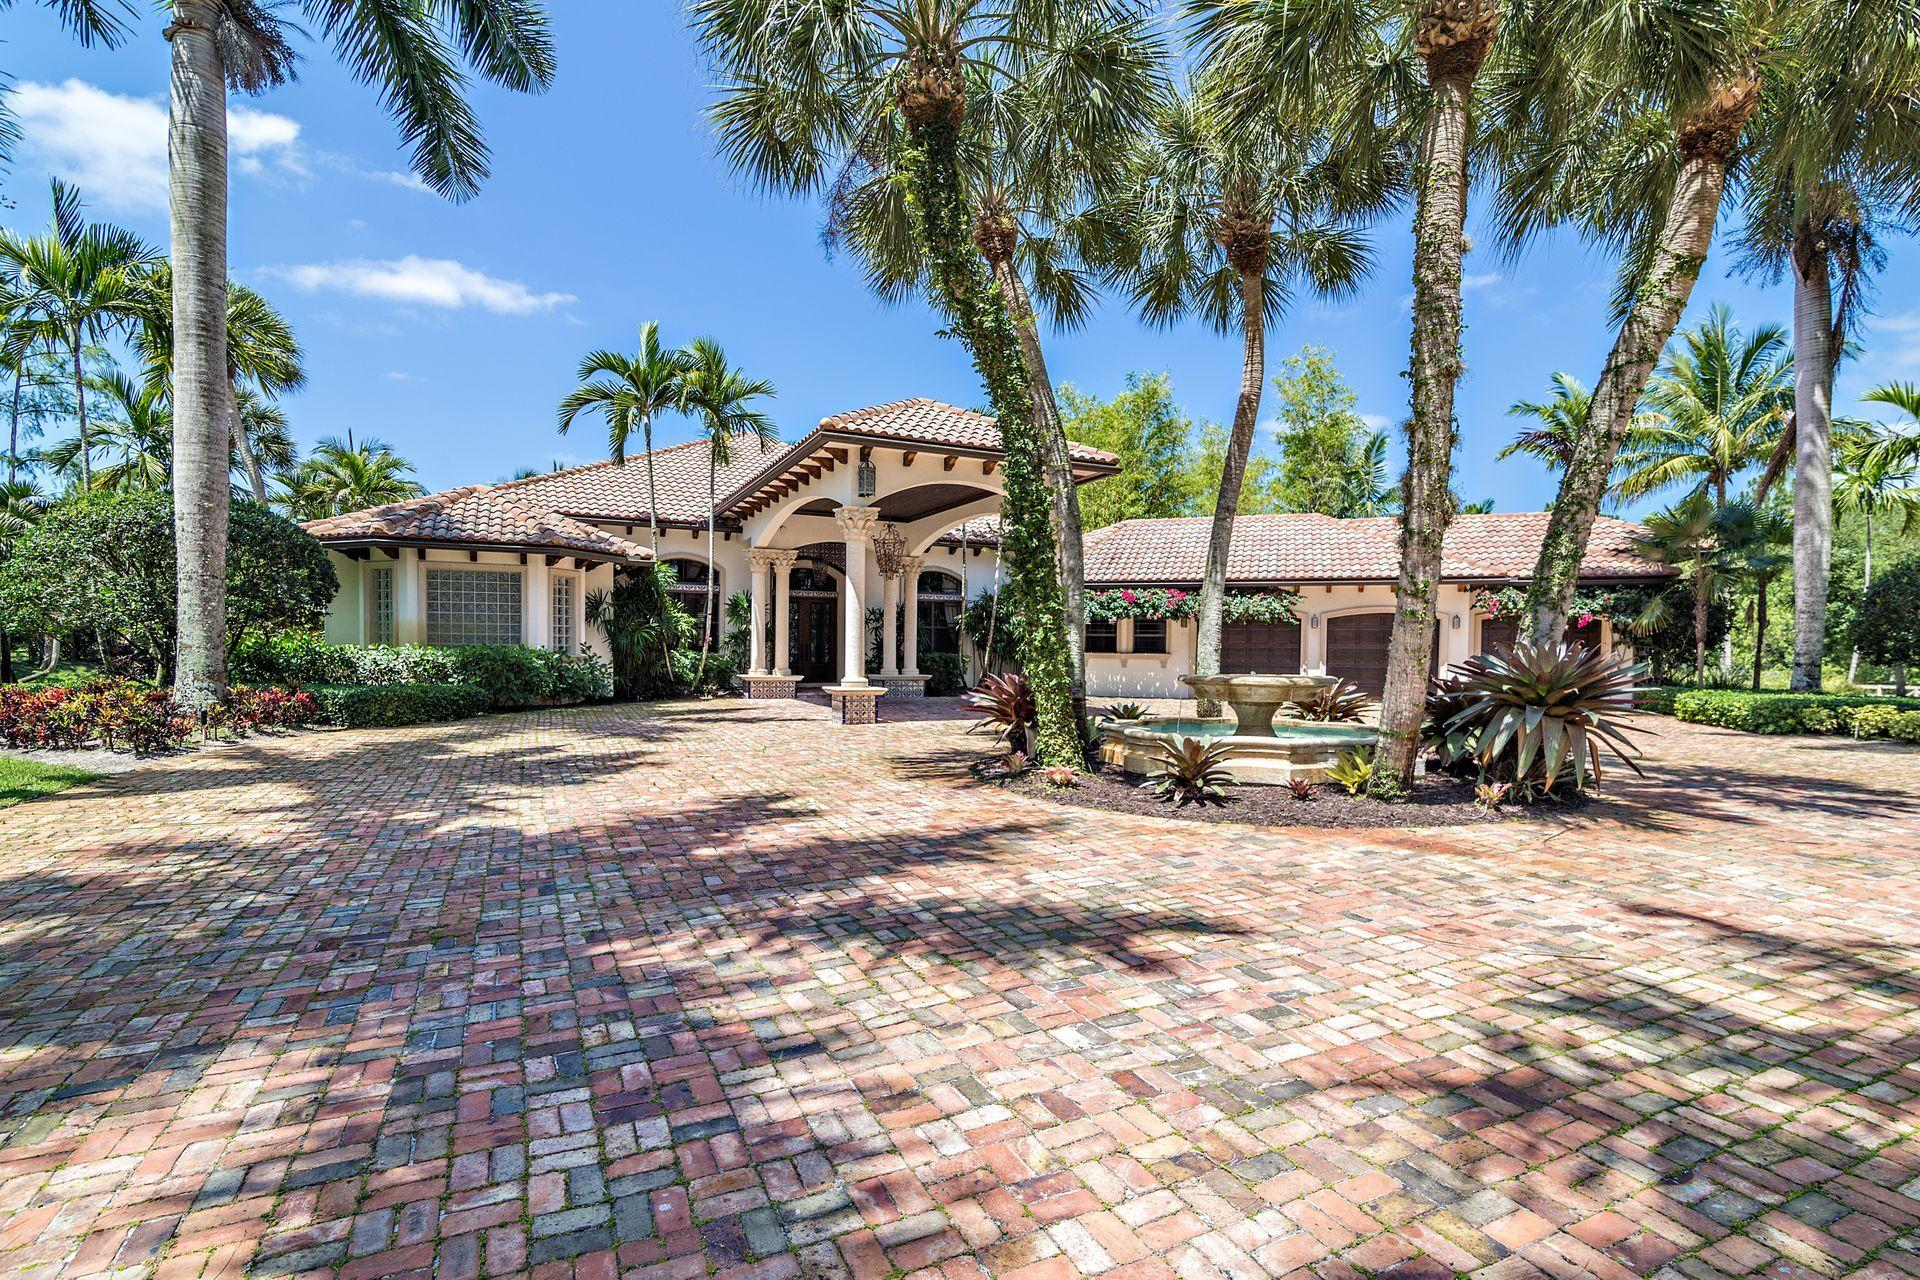 Home for sale in Caloosa Palm Beach Gardens Florida